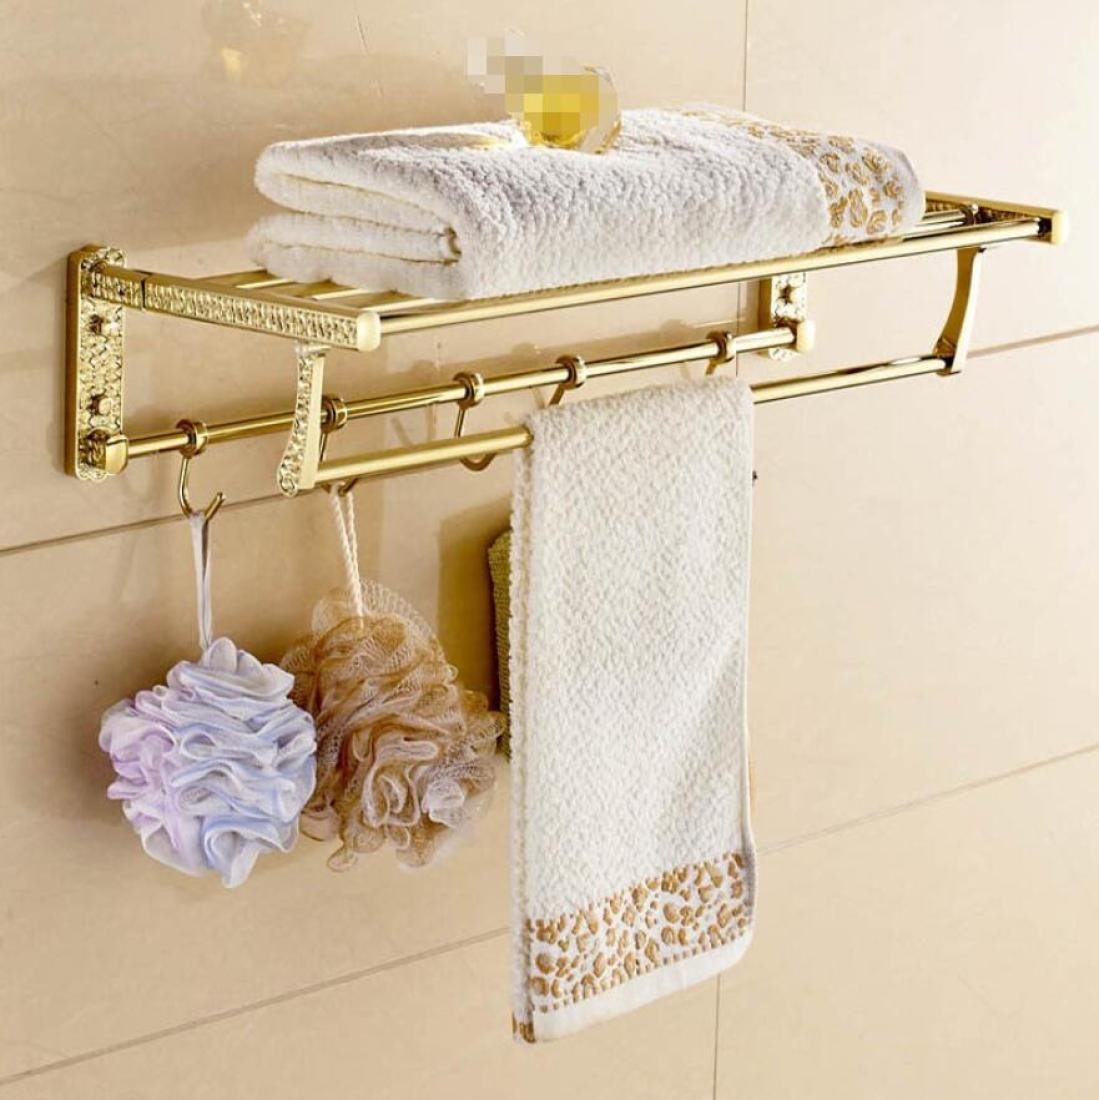 GL&G Gold stainless steel Bathroom Bath Towel Rack Double Towel Bar activity With hook Holder Towel Bars Wall Mount Collapsible Bathroom Shelves Home Decoration Towels storage